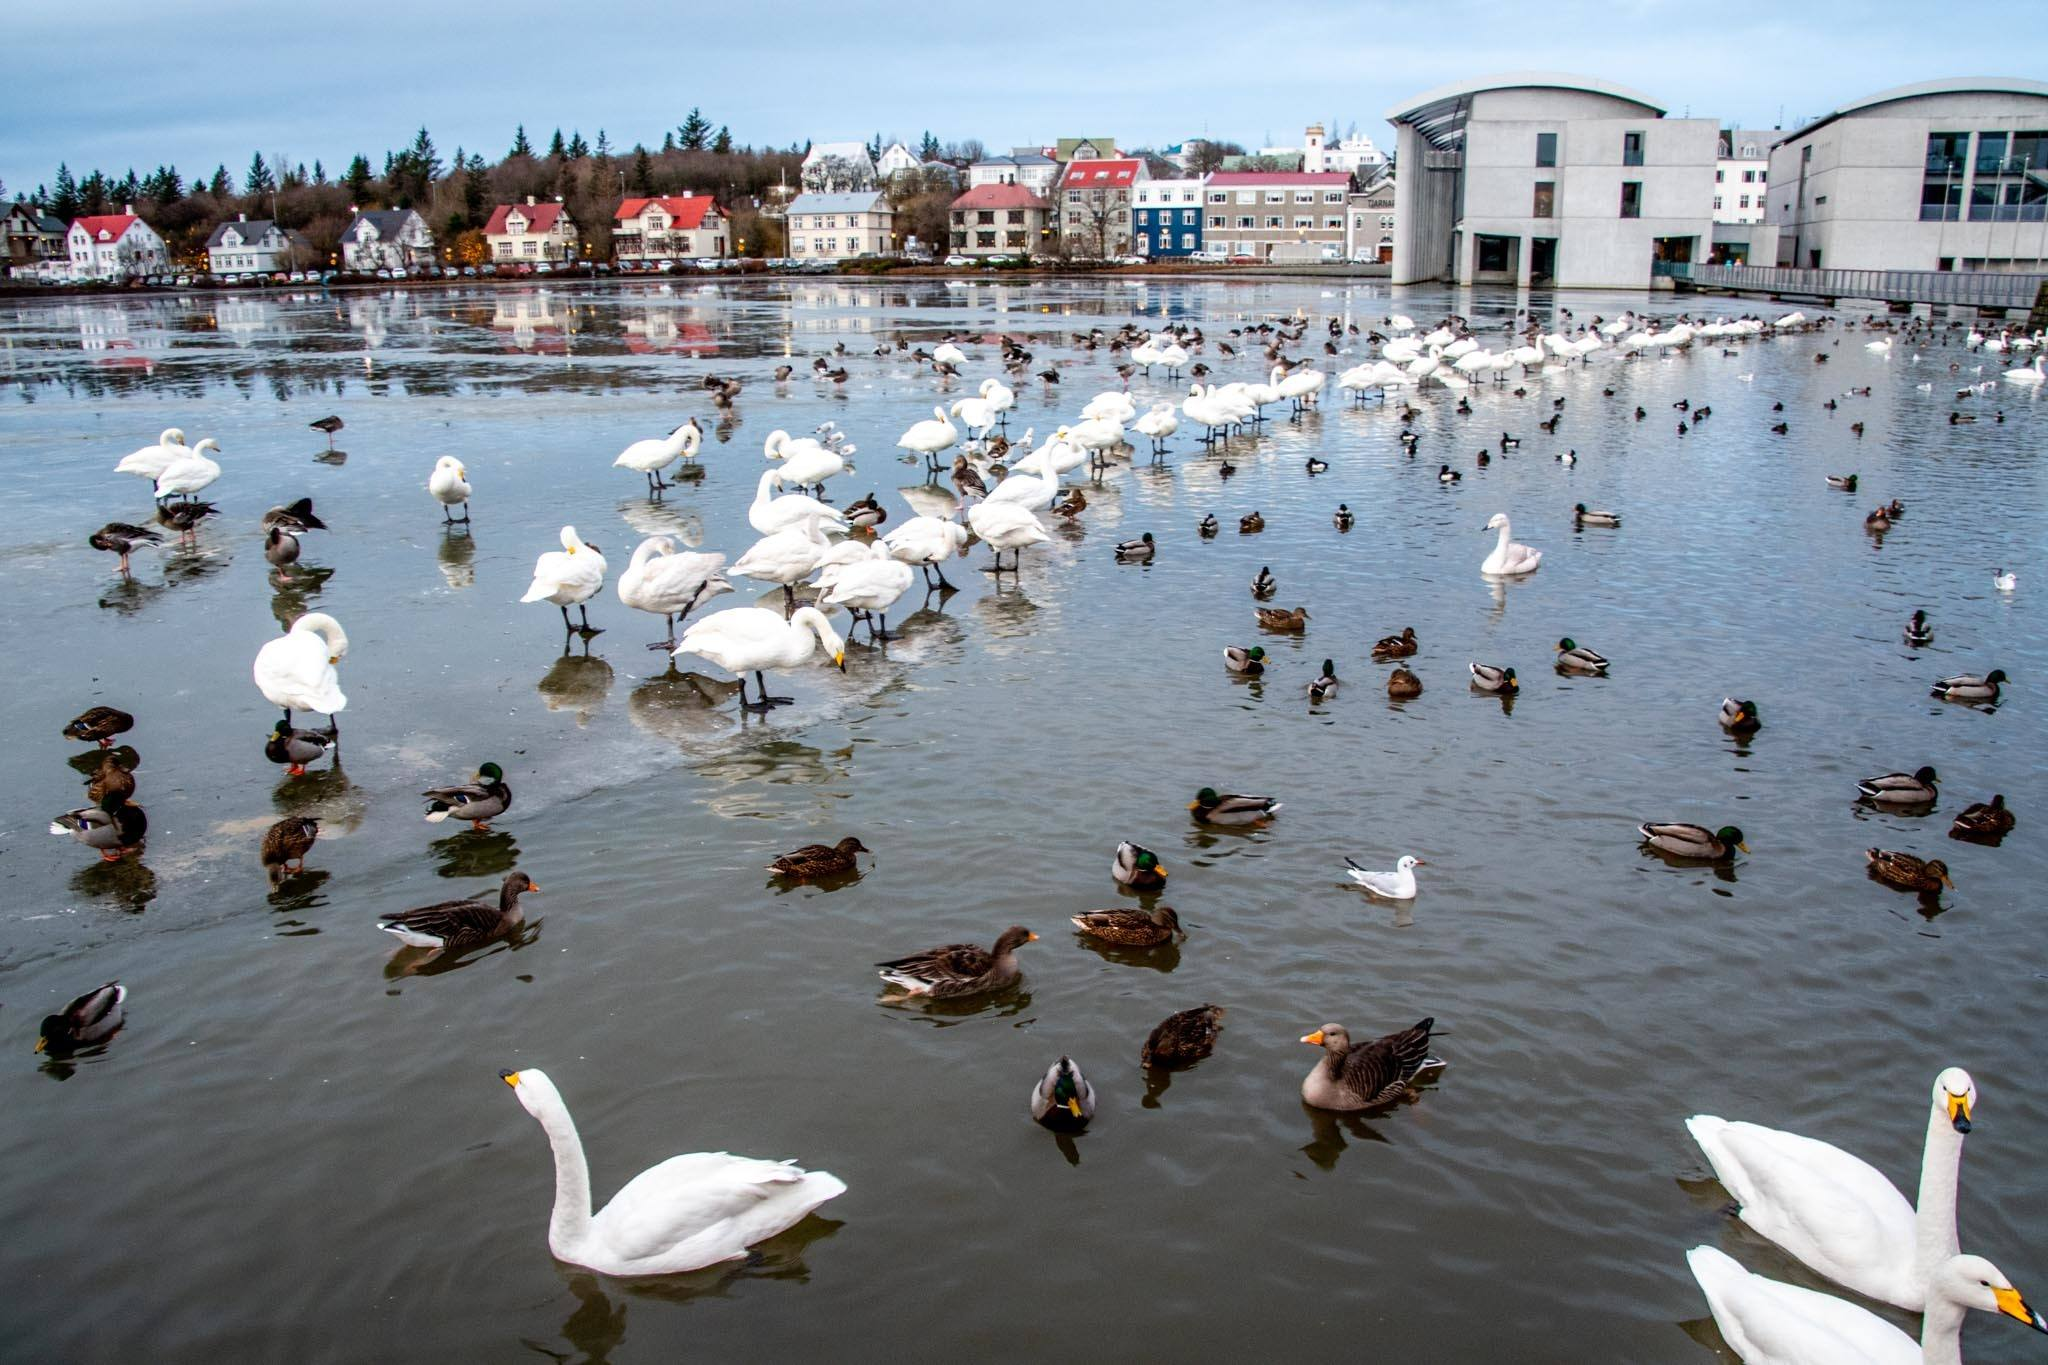 Ducks and swans on the Tjörnin in front of the Reykjavik City Hall.